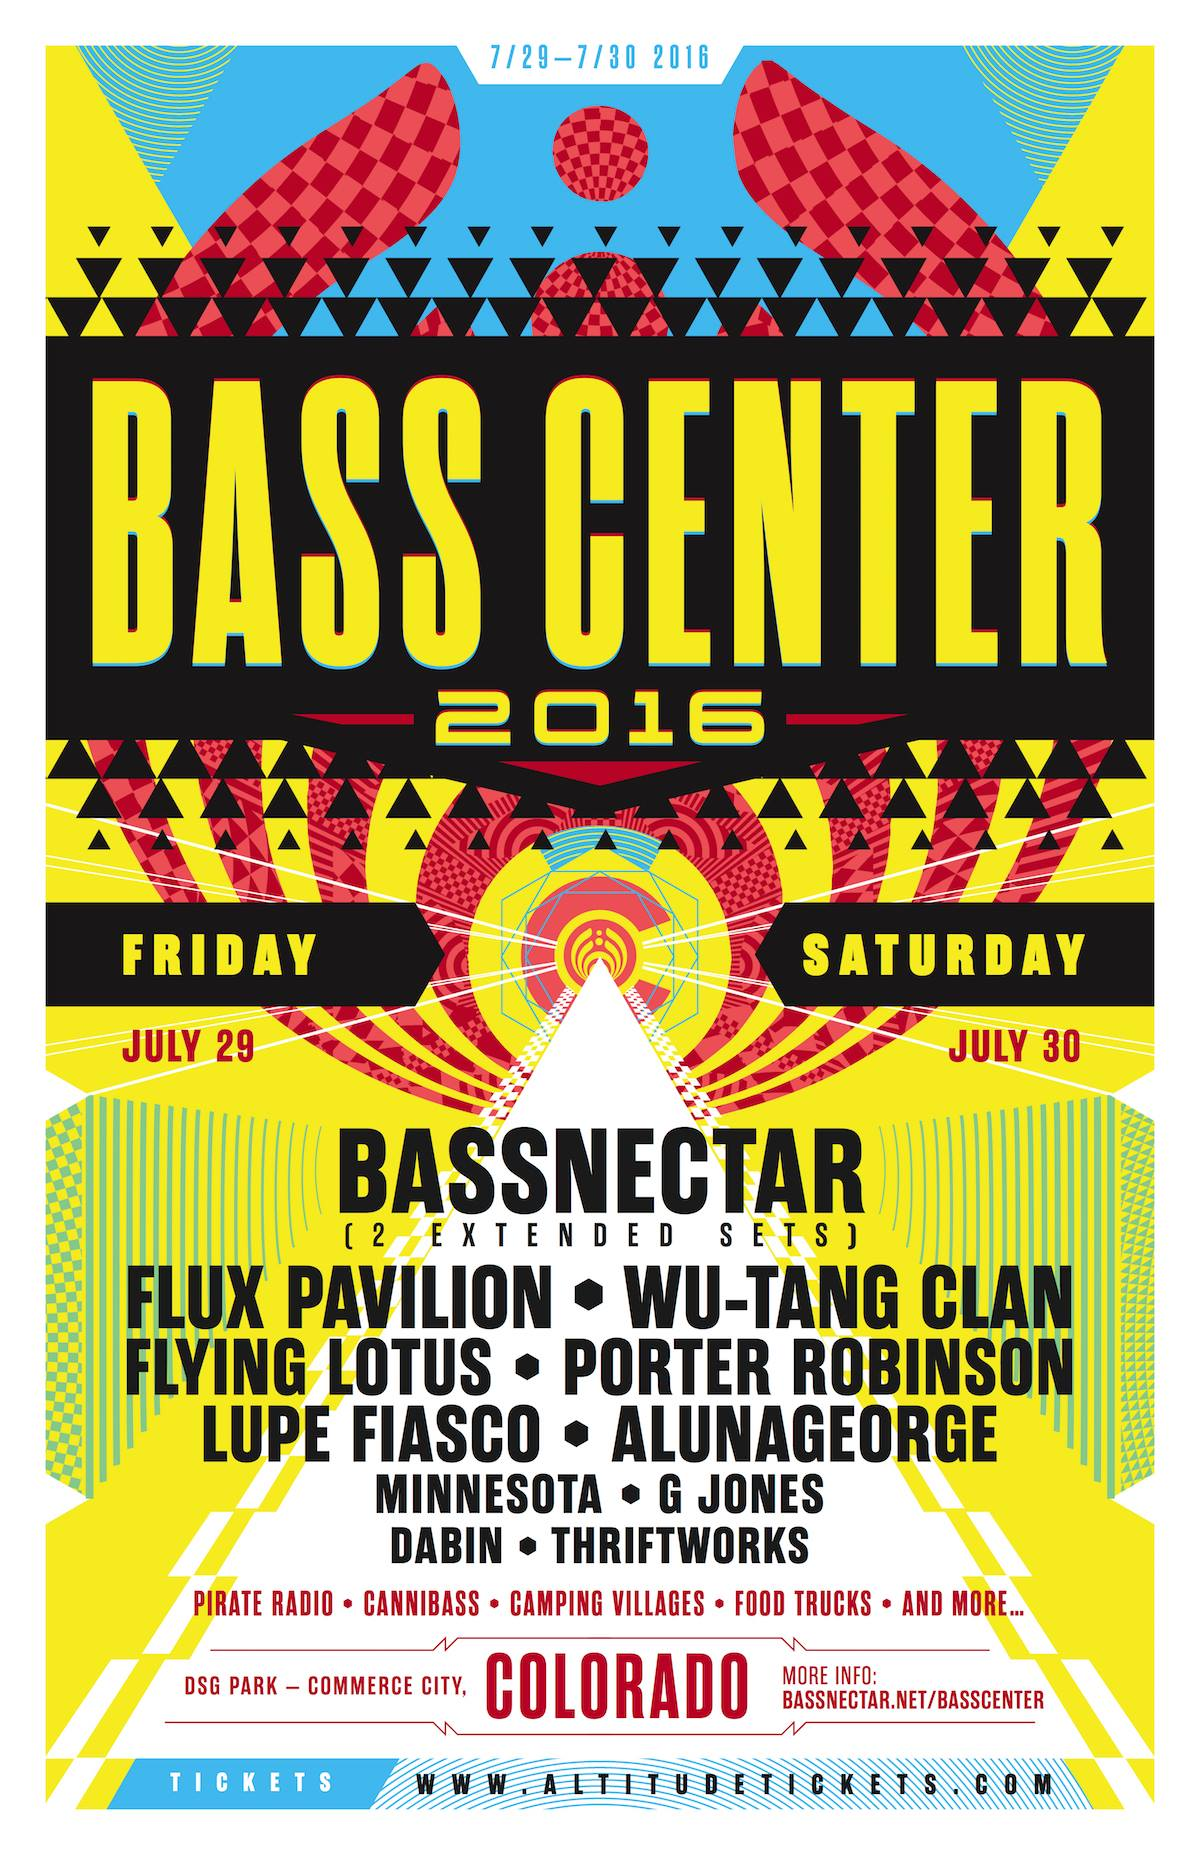 bassnectar bass center